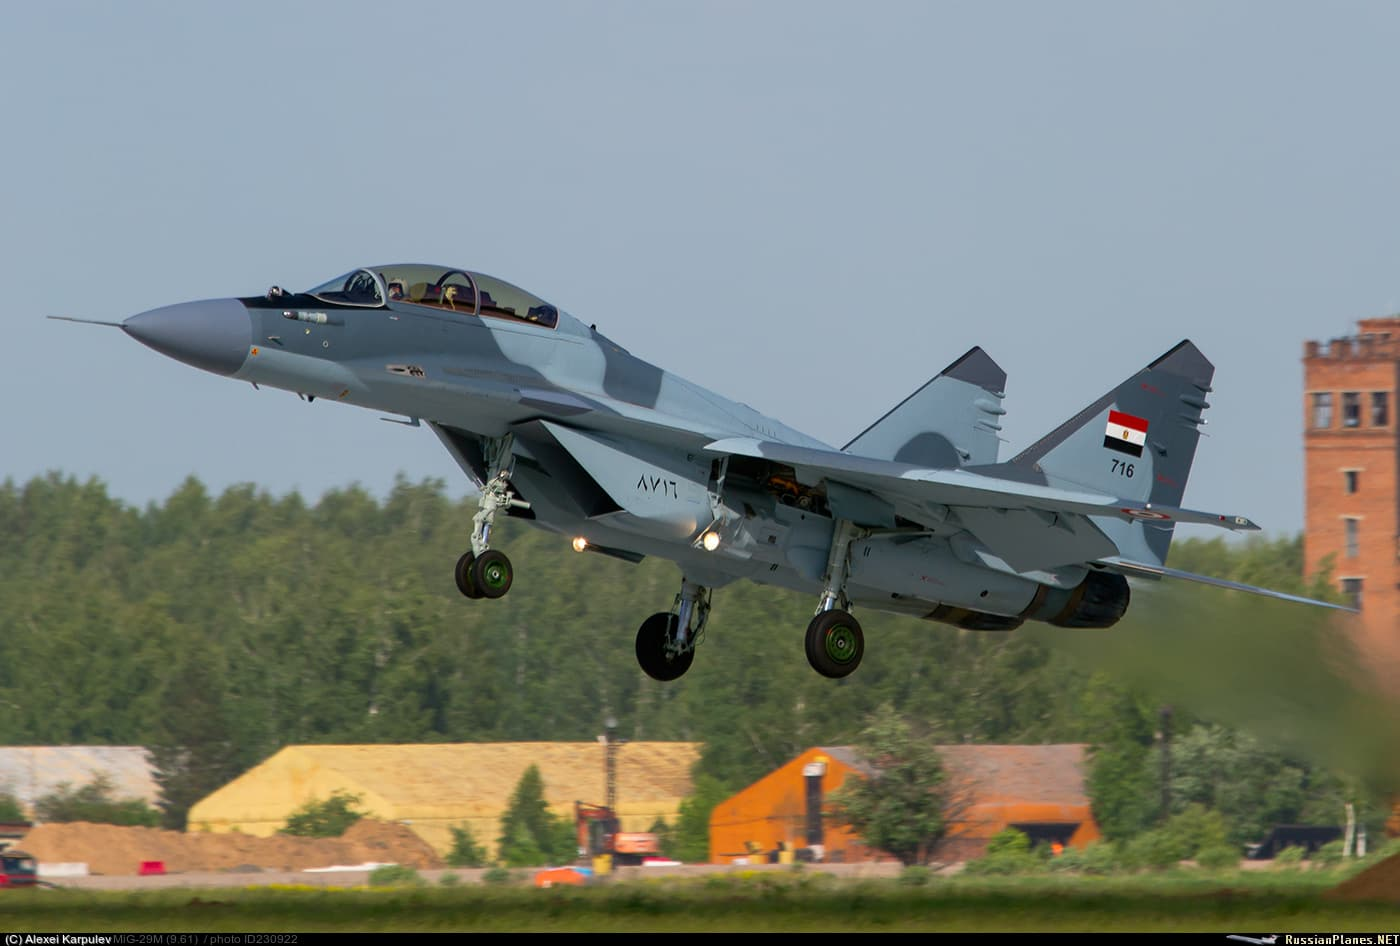 Russian Aircraft Corporation Mig Twitter - The Best and